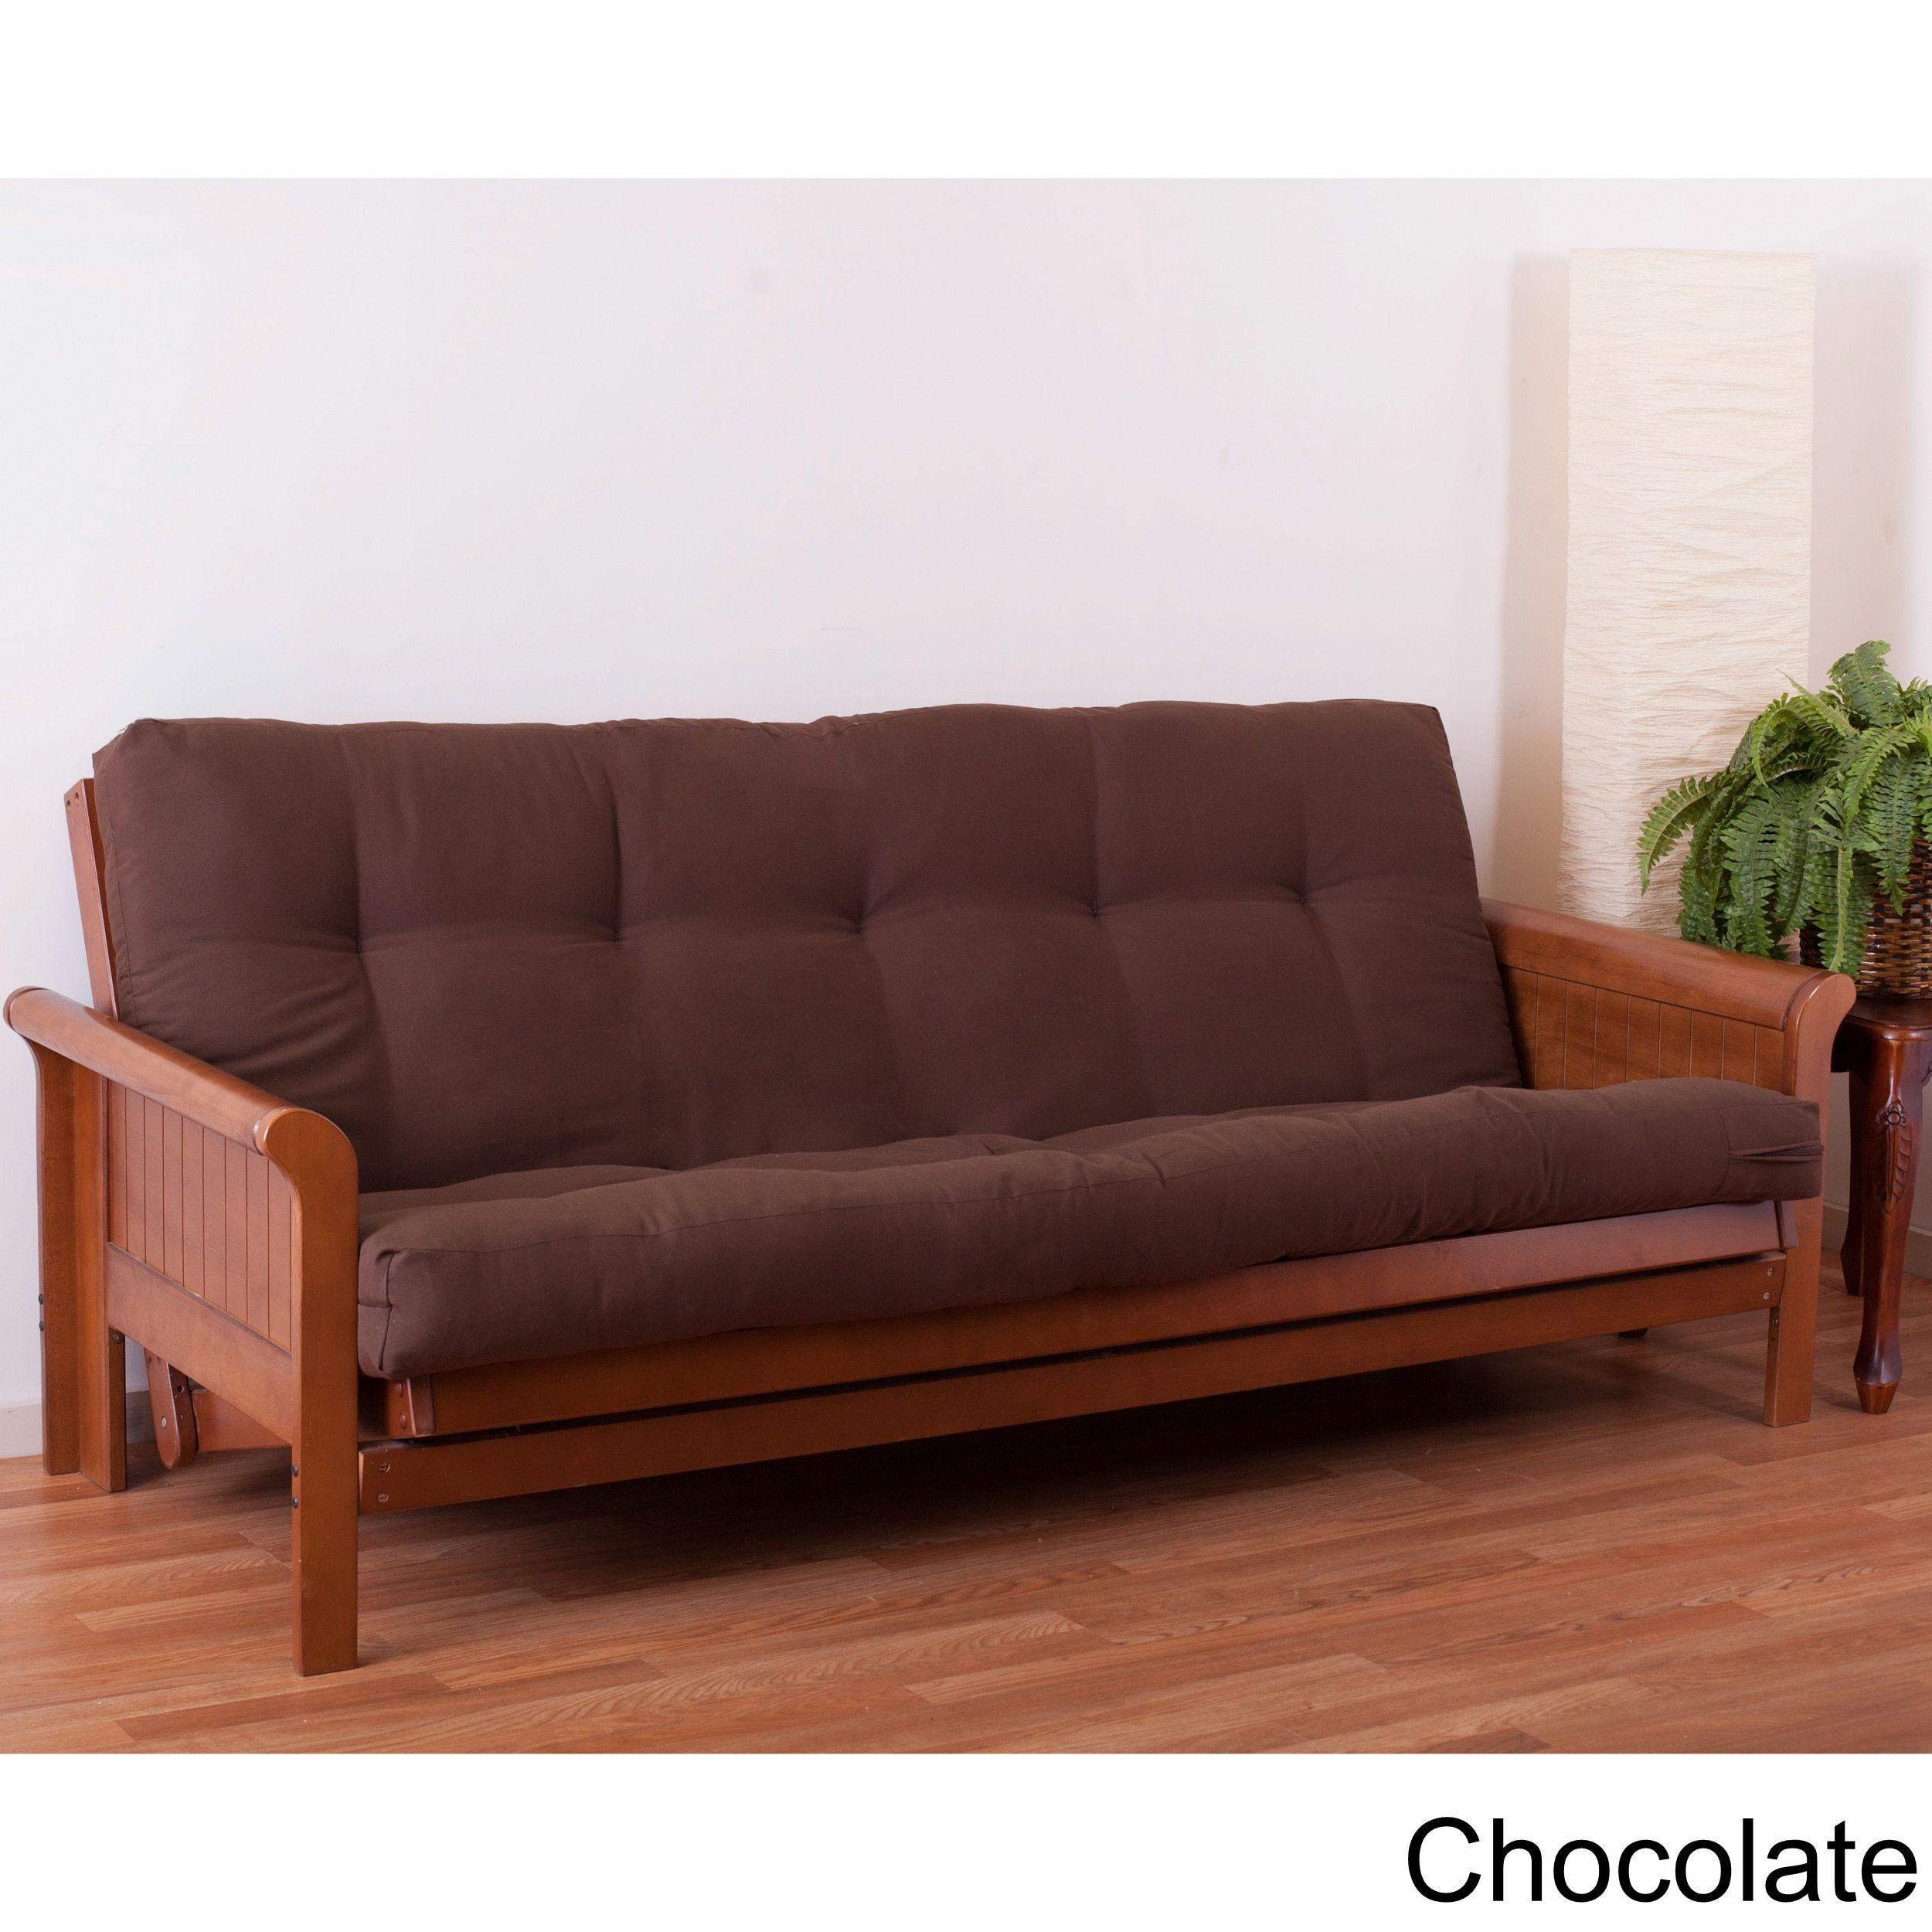 class loft coil mattress of inner sand futons spring pocketed pin world full futon suede